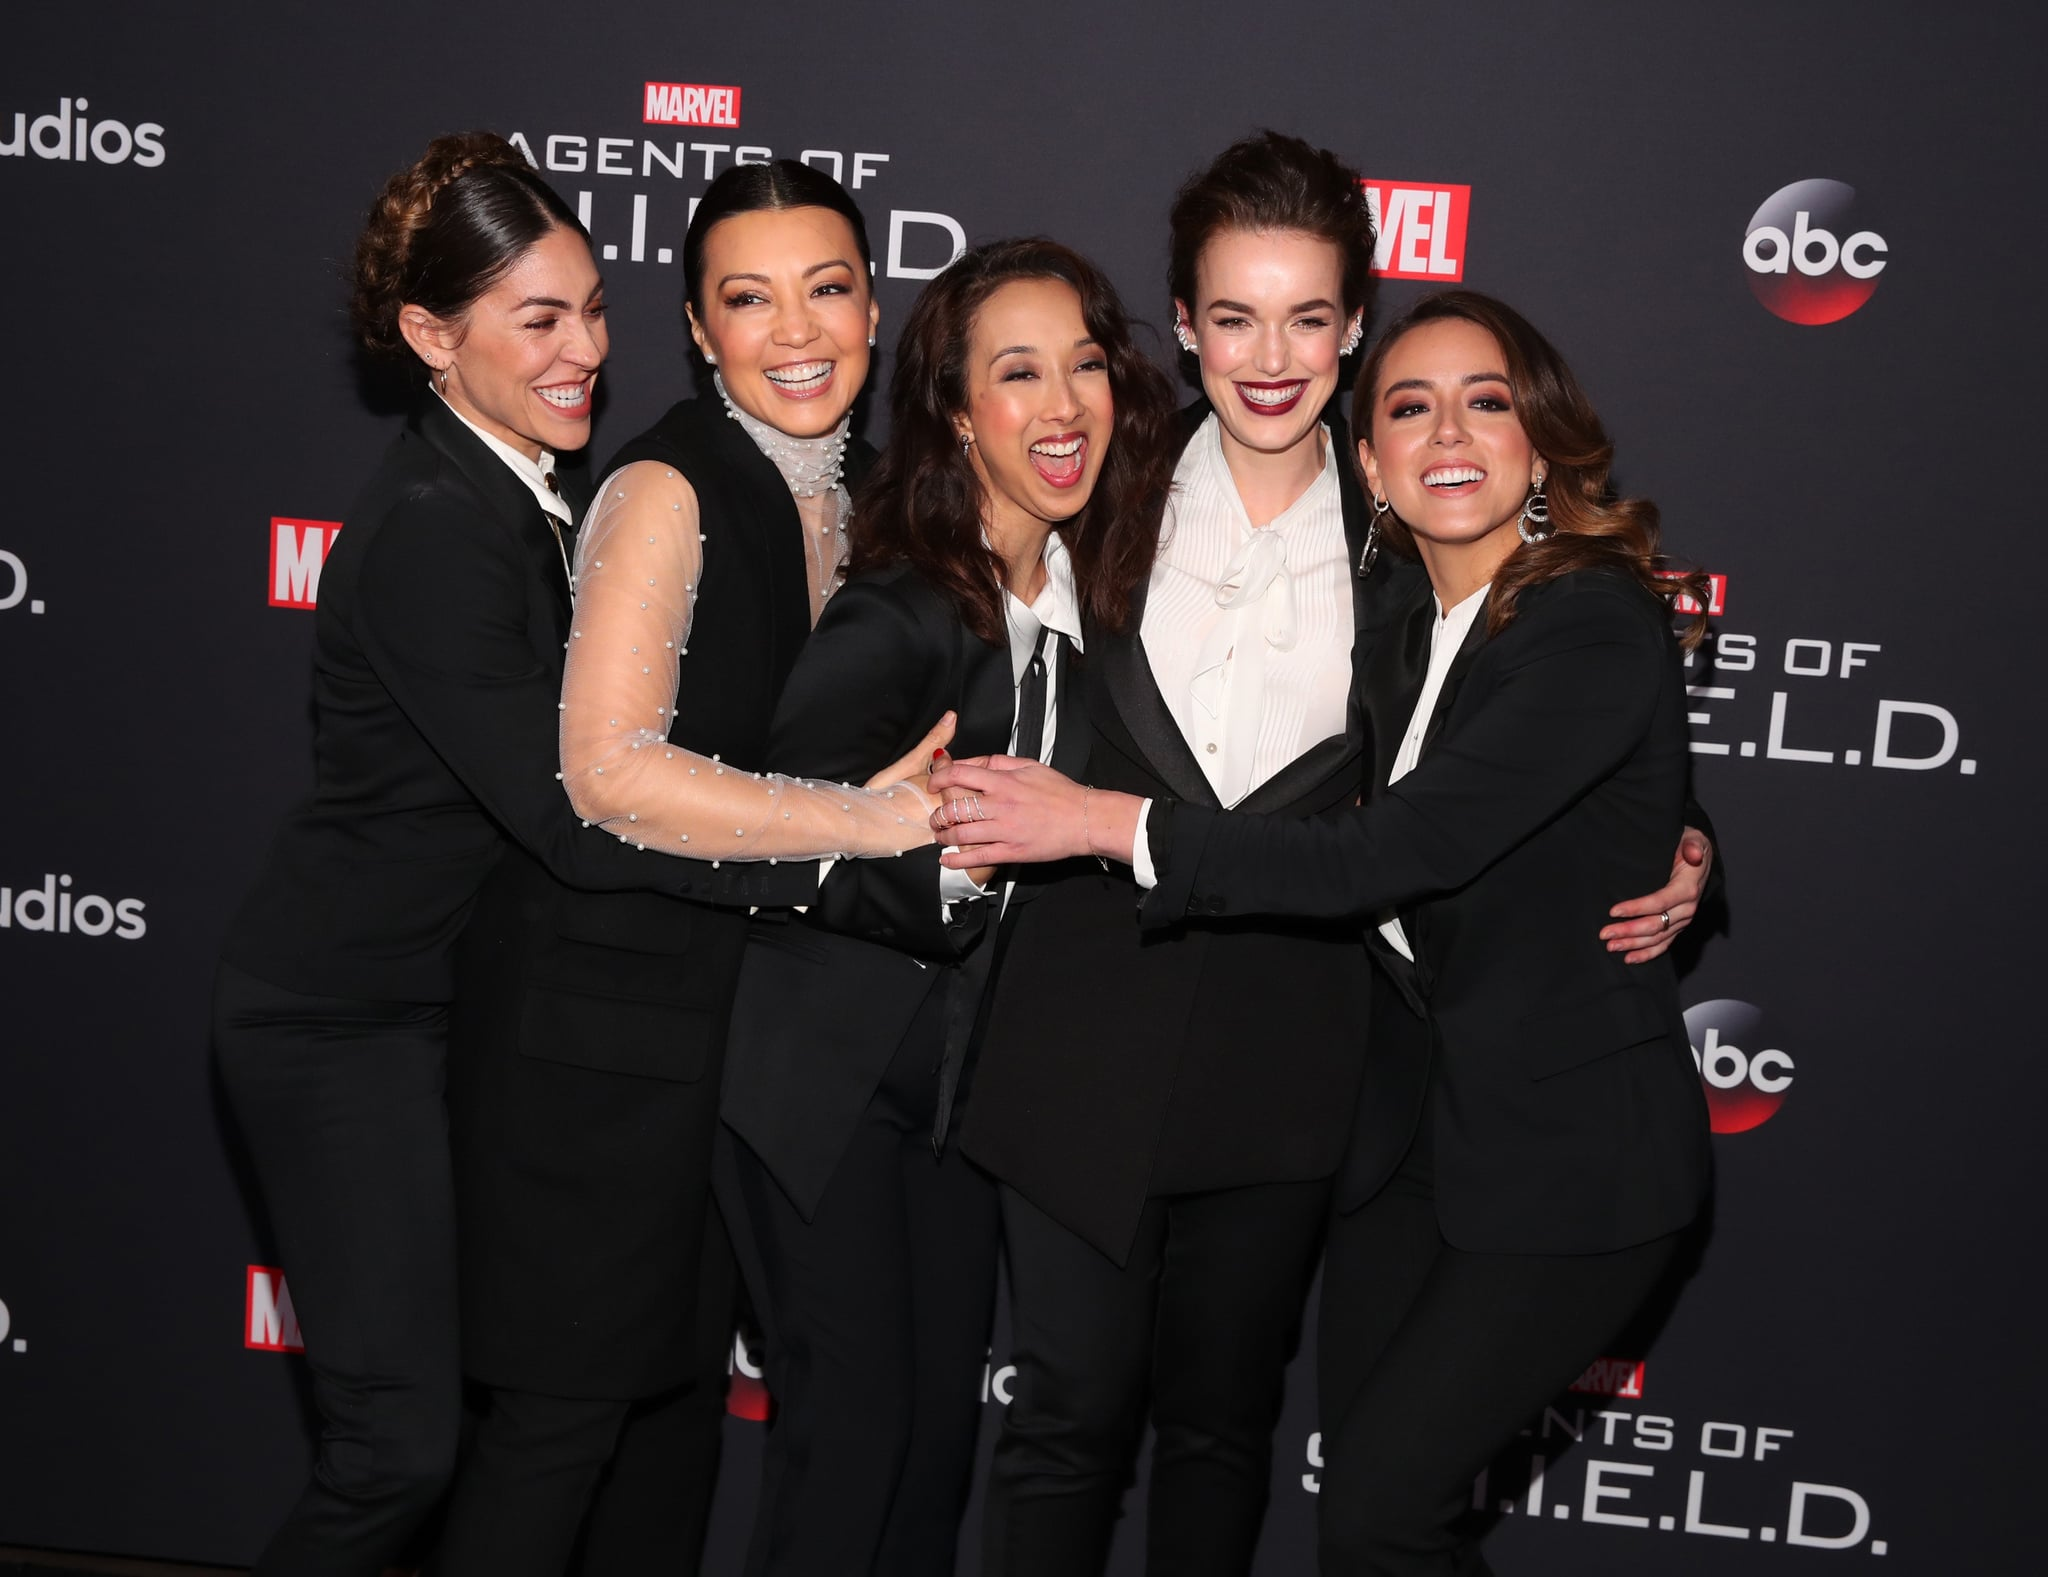 HOLLYWOOD, CA - FEBRUARY 24:  (L-R) Natalia Cordova-Buckley, Ming-Na Wen, Maurissa Tancharoen, Elizabeth Henstridge and Chloe Bennet attend the 100th episode celebration of ABC's